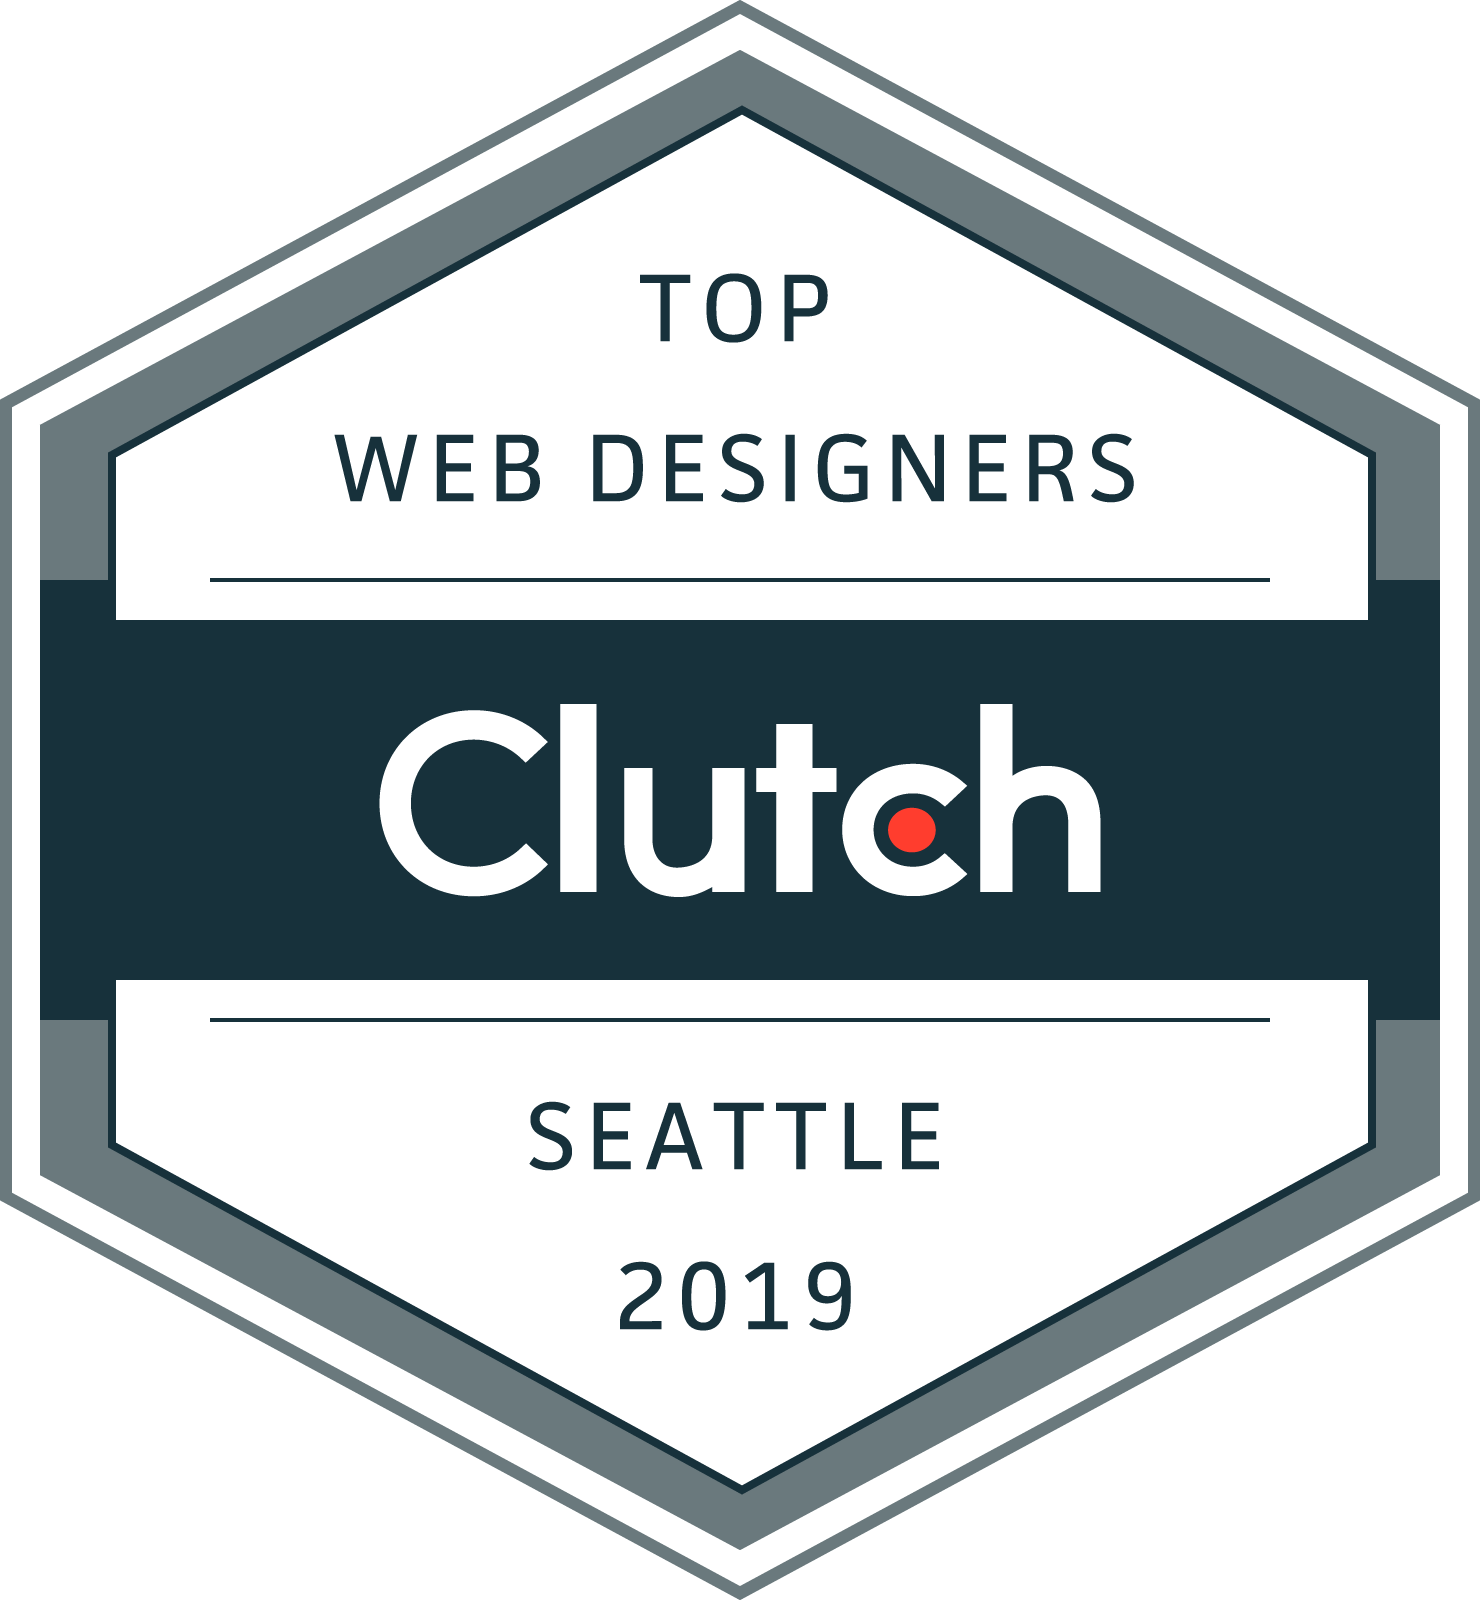 Clutch Top Web Designers 2019